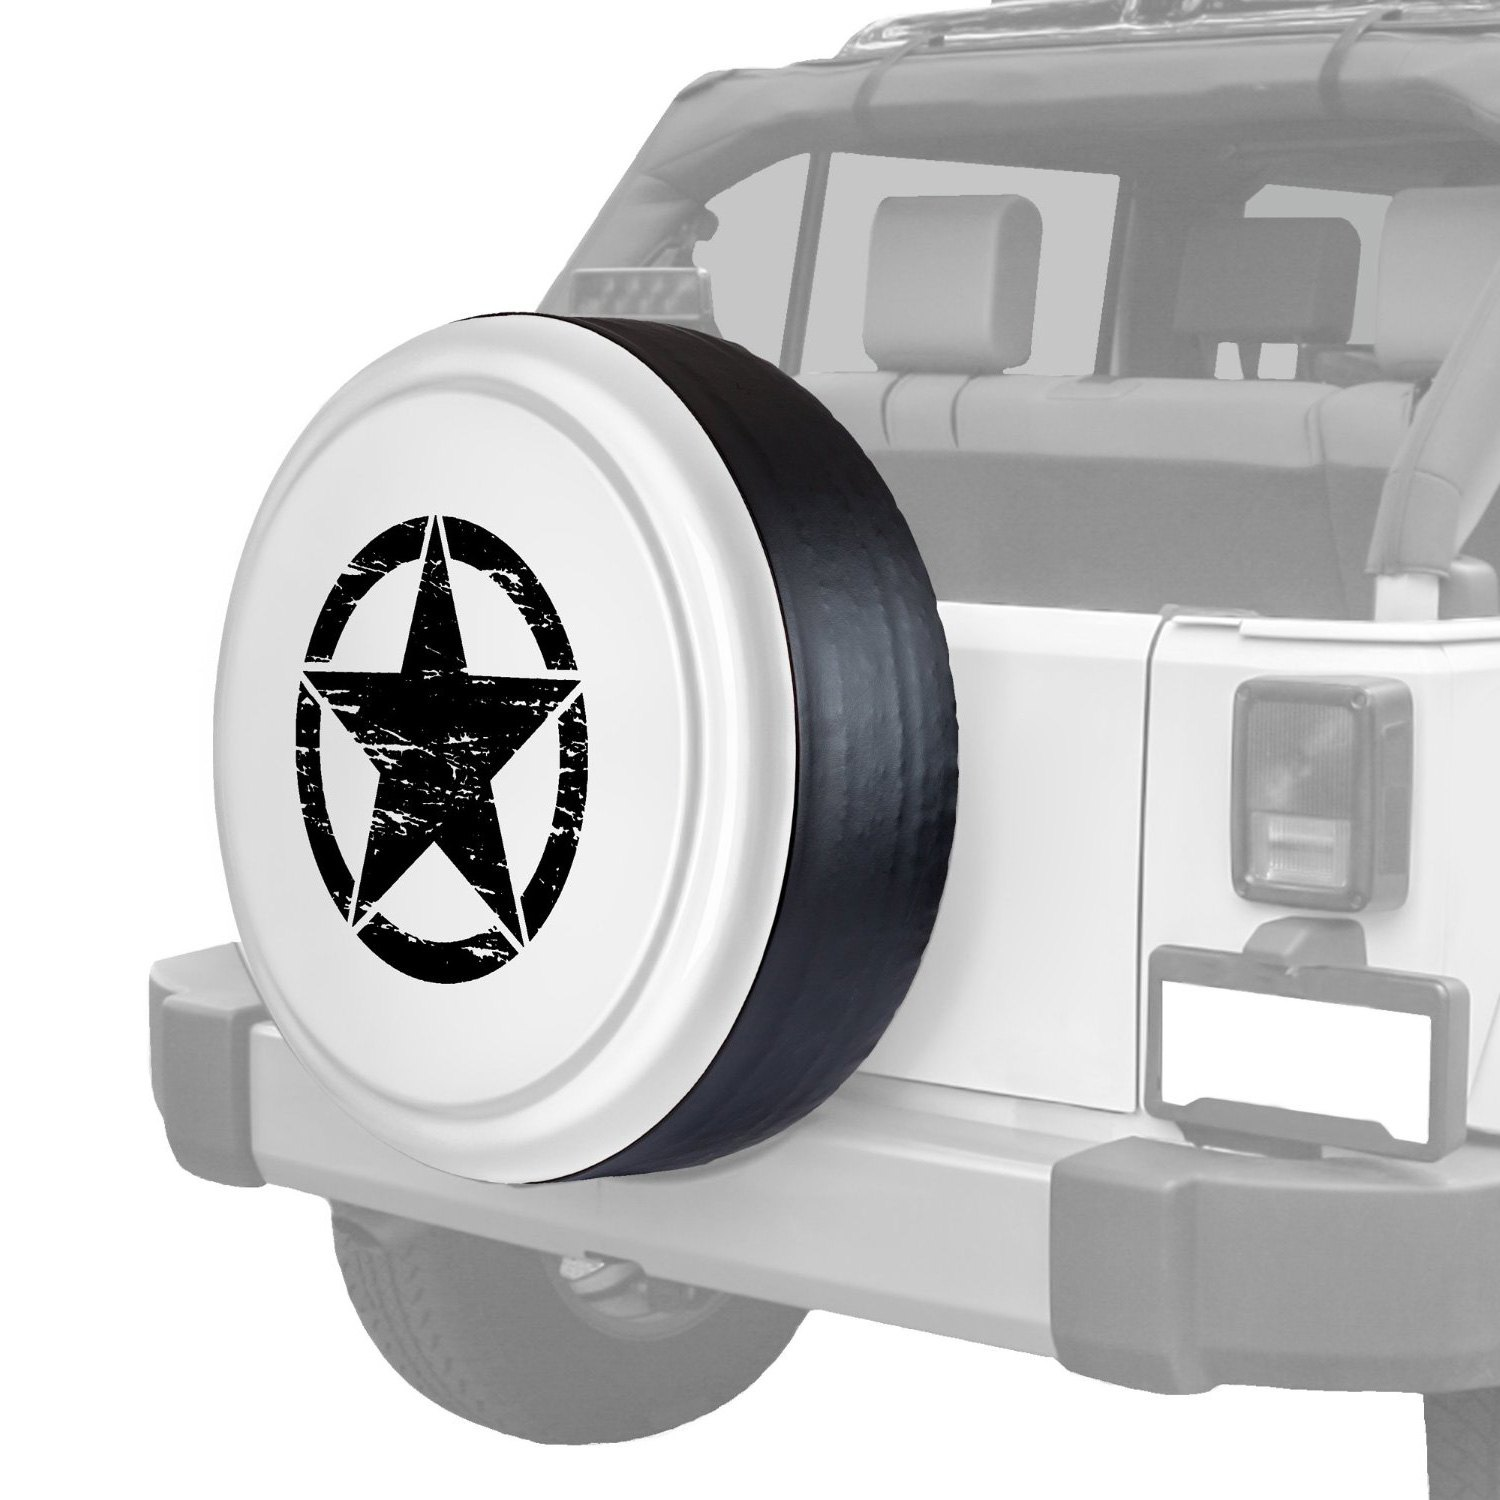 Rigid Series Black Tire Cover With Oscar Mike Logo 32 Mpn Rg Om32 Blk likewise Jewrsptico together with Rigid Series Bright White Tire Cover With Oscar Mike Logo Mpn Rg Om32 Bw furthermore 2016 Jeep Oscar Mike in addition 2. on oscar mike spare tire cover